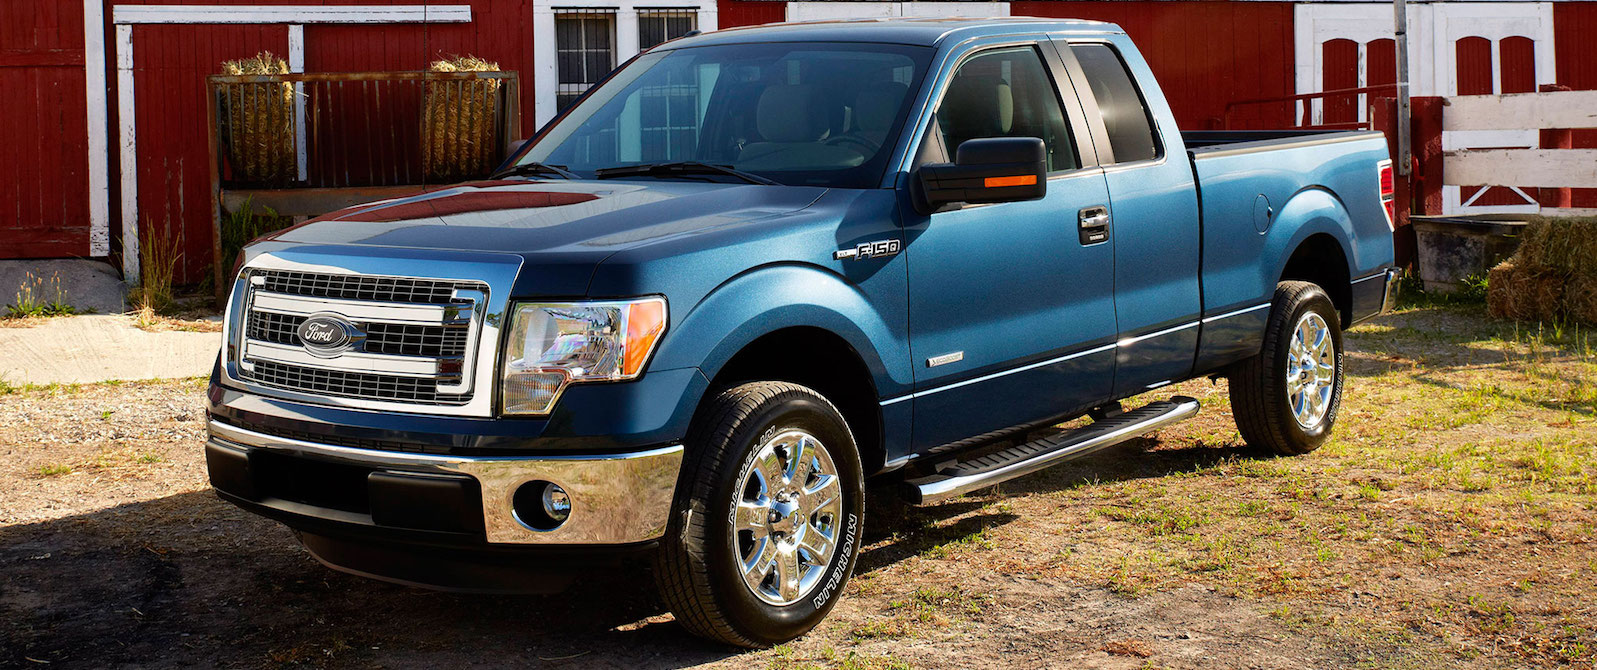 Ford f 150 12th gen